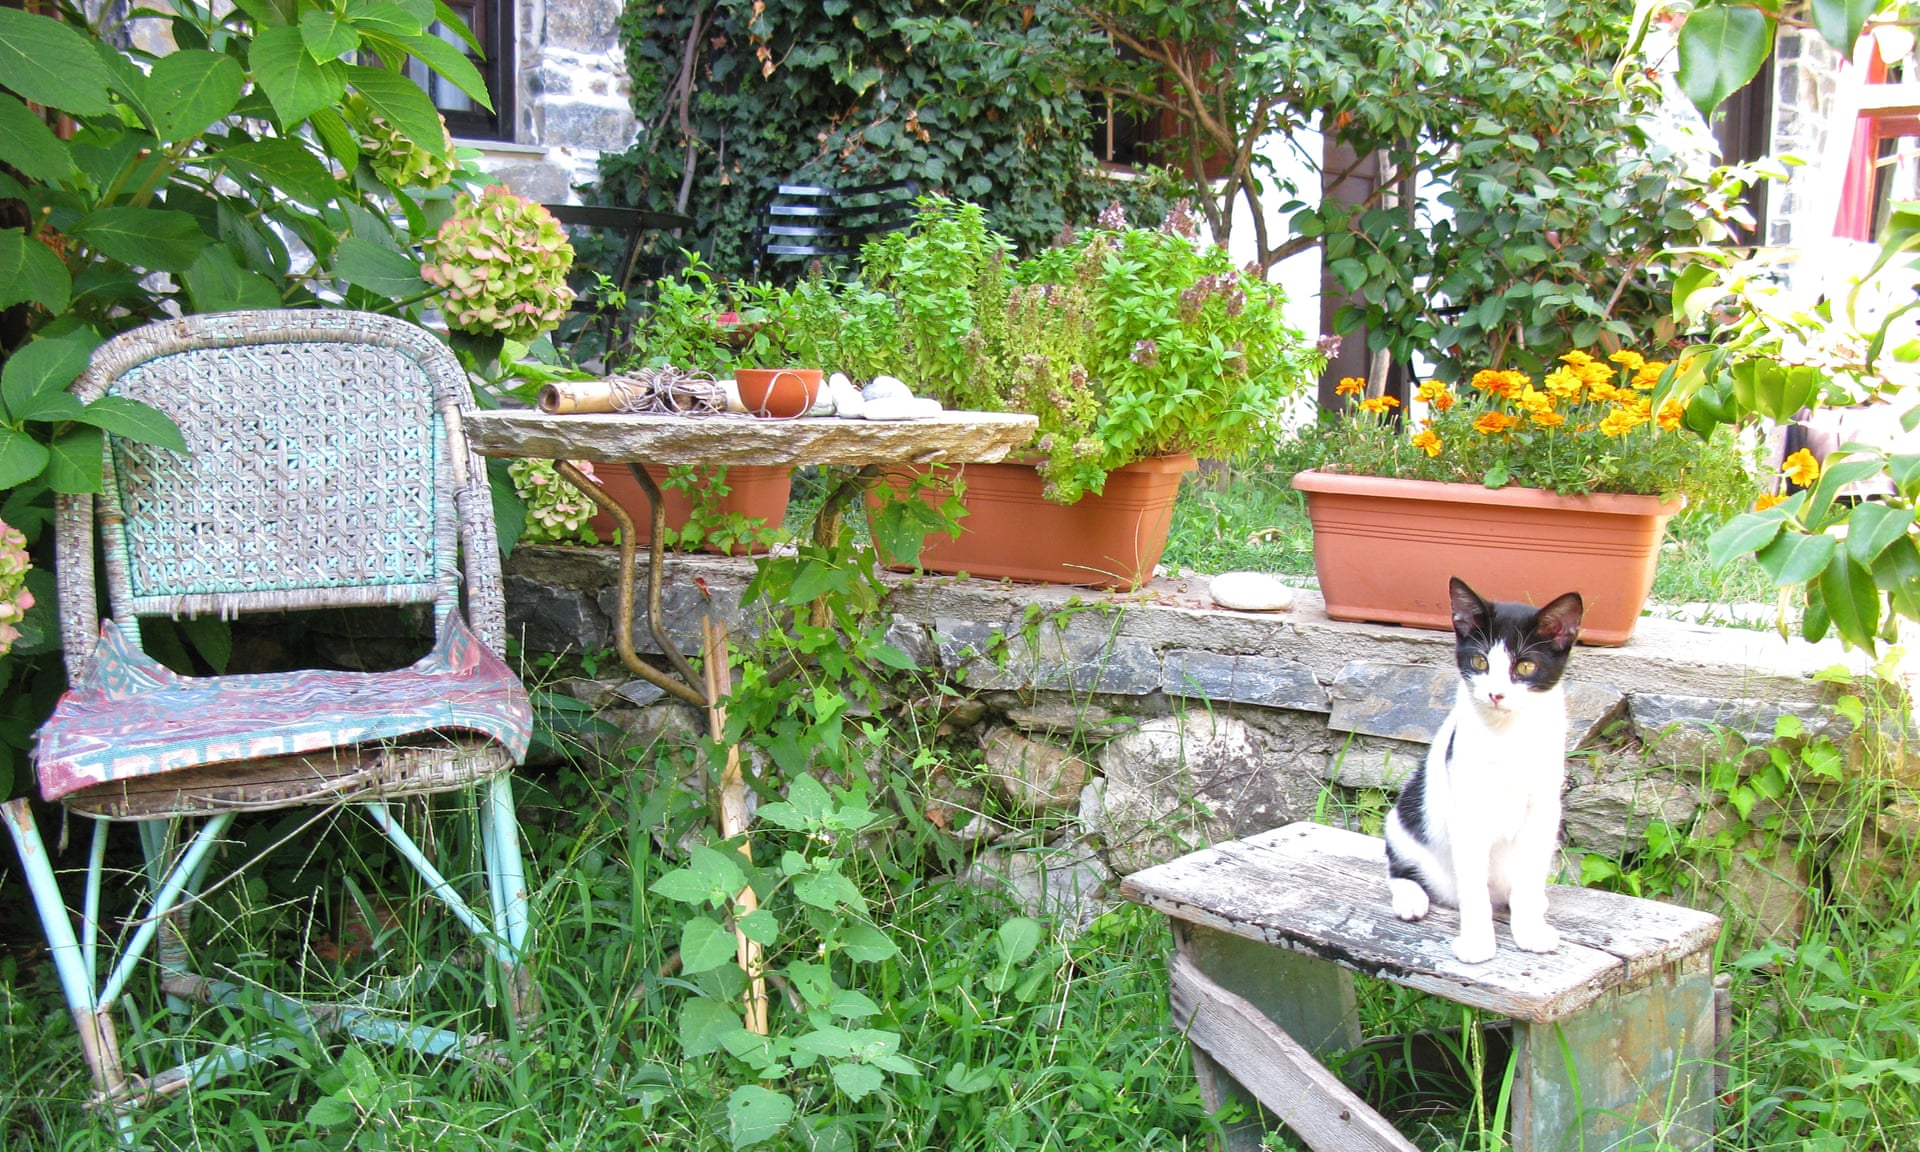 In Praise Of Unrenovated Kitchens And Overgrown Gardens